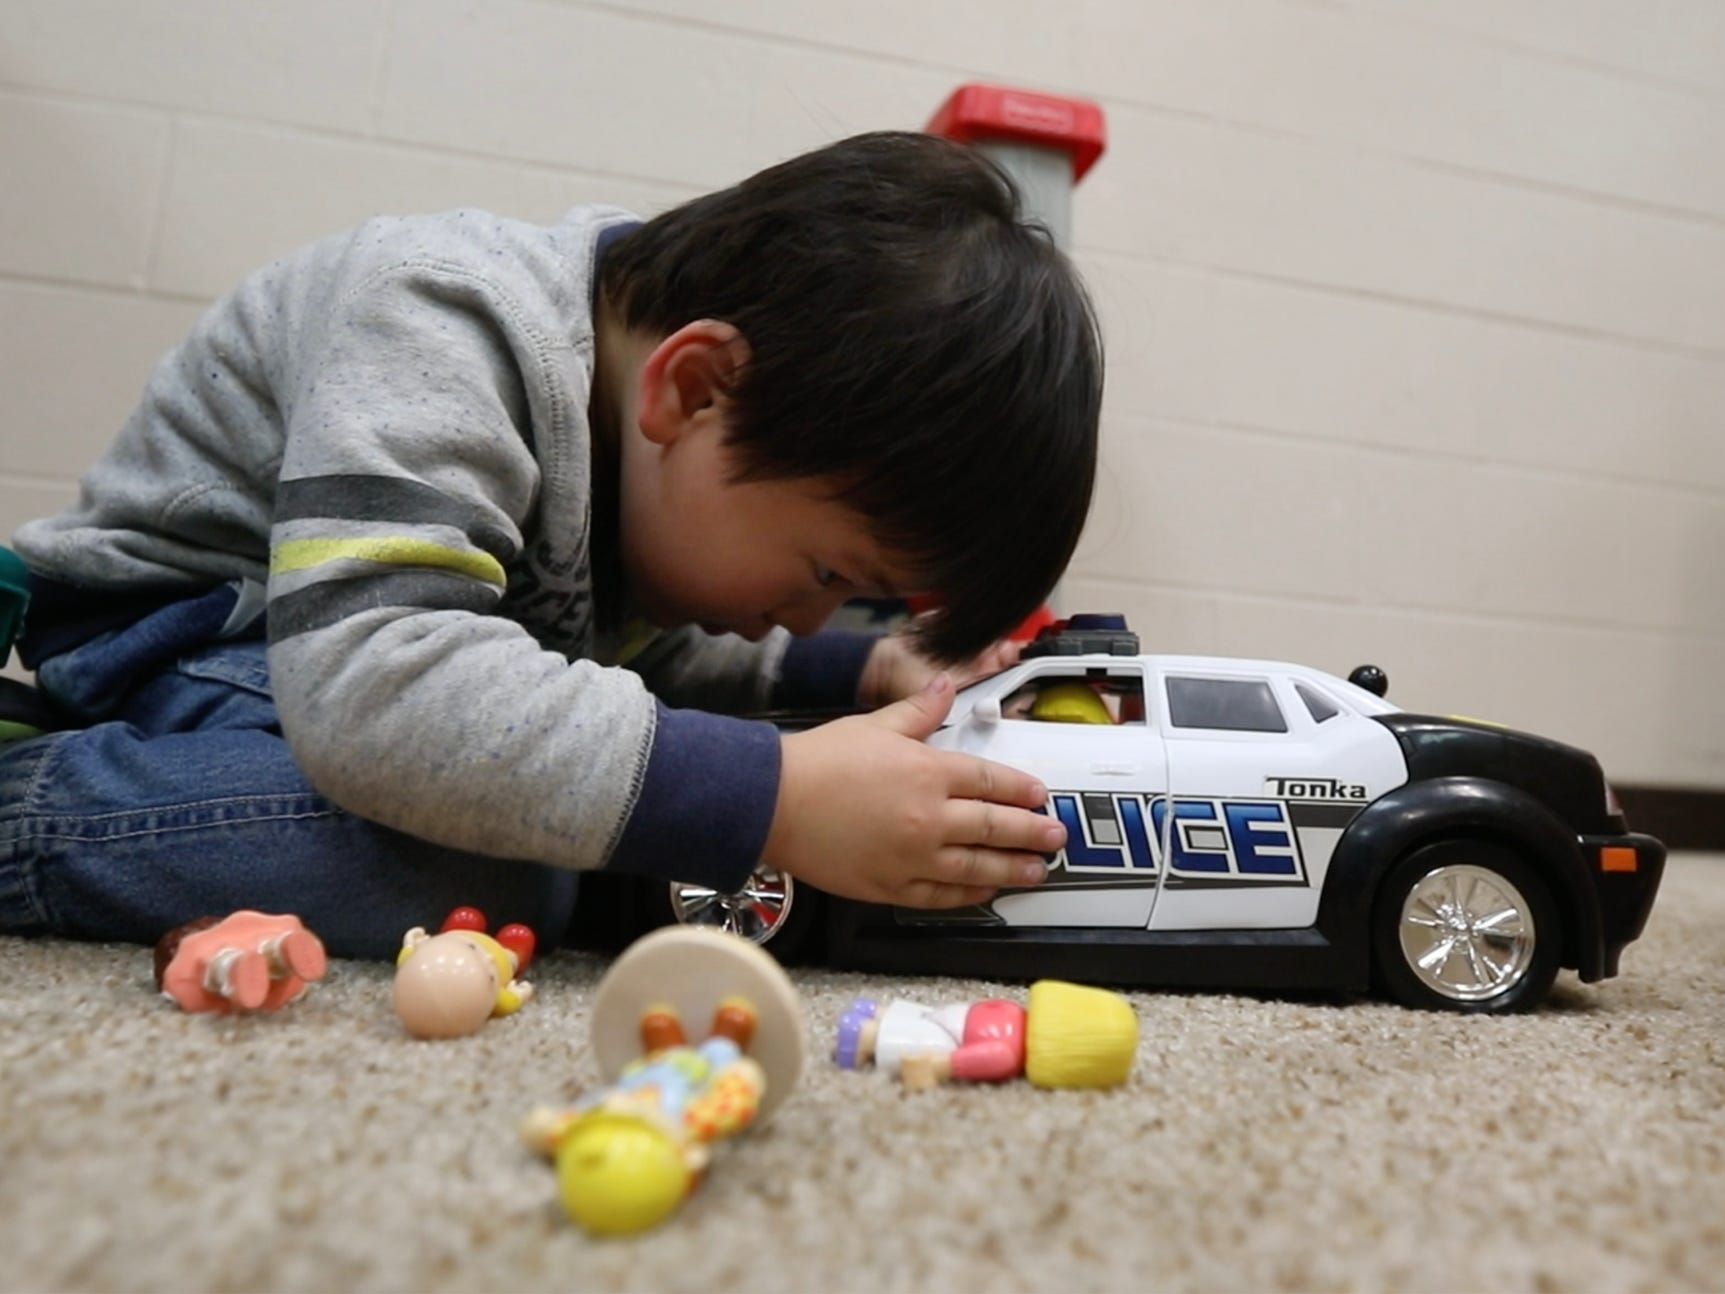 Yahoo He Zao looks in on the Little People he put in the police car he was playing with at Glengarry EarlyON Child and Family Centre.  Ontario Province funds these age 0 to 6 programs where parents and children can drop in and stay and play, which helps with child development.